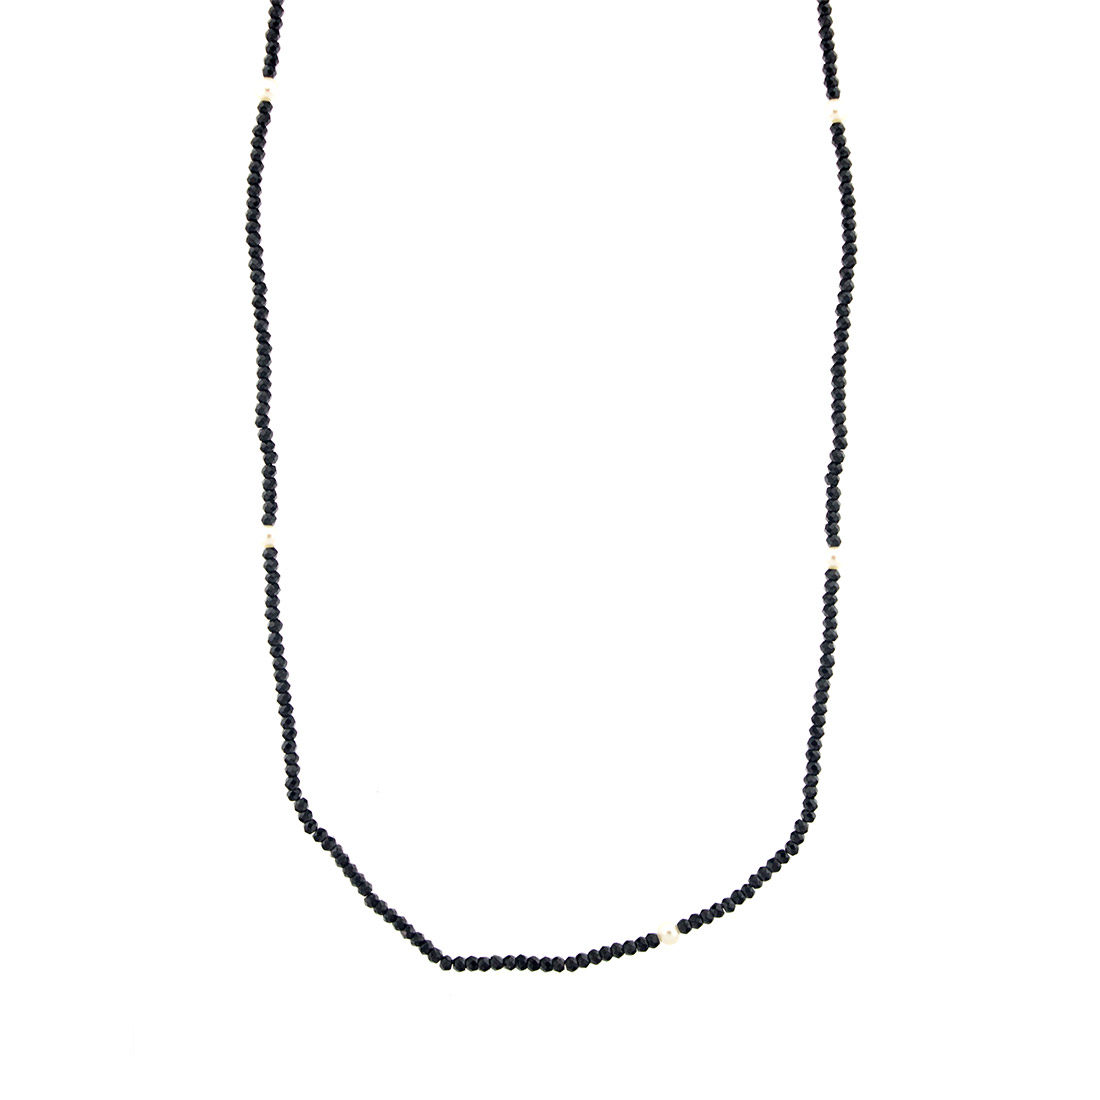 41192b9a747ca Tiffany & Co. ZIEGFELD Black Spinel and Pearl Necklace